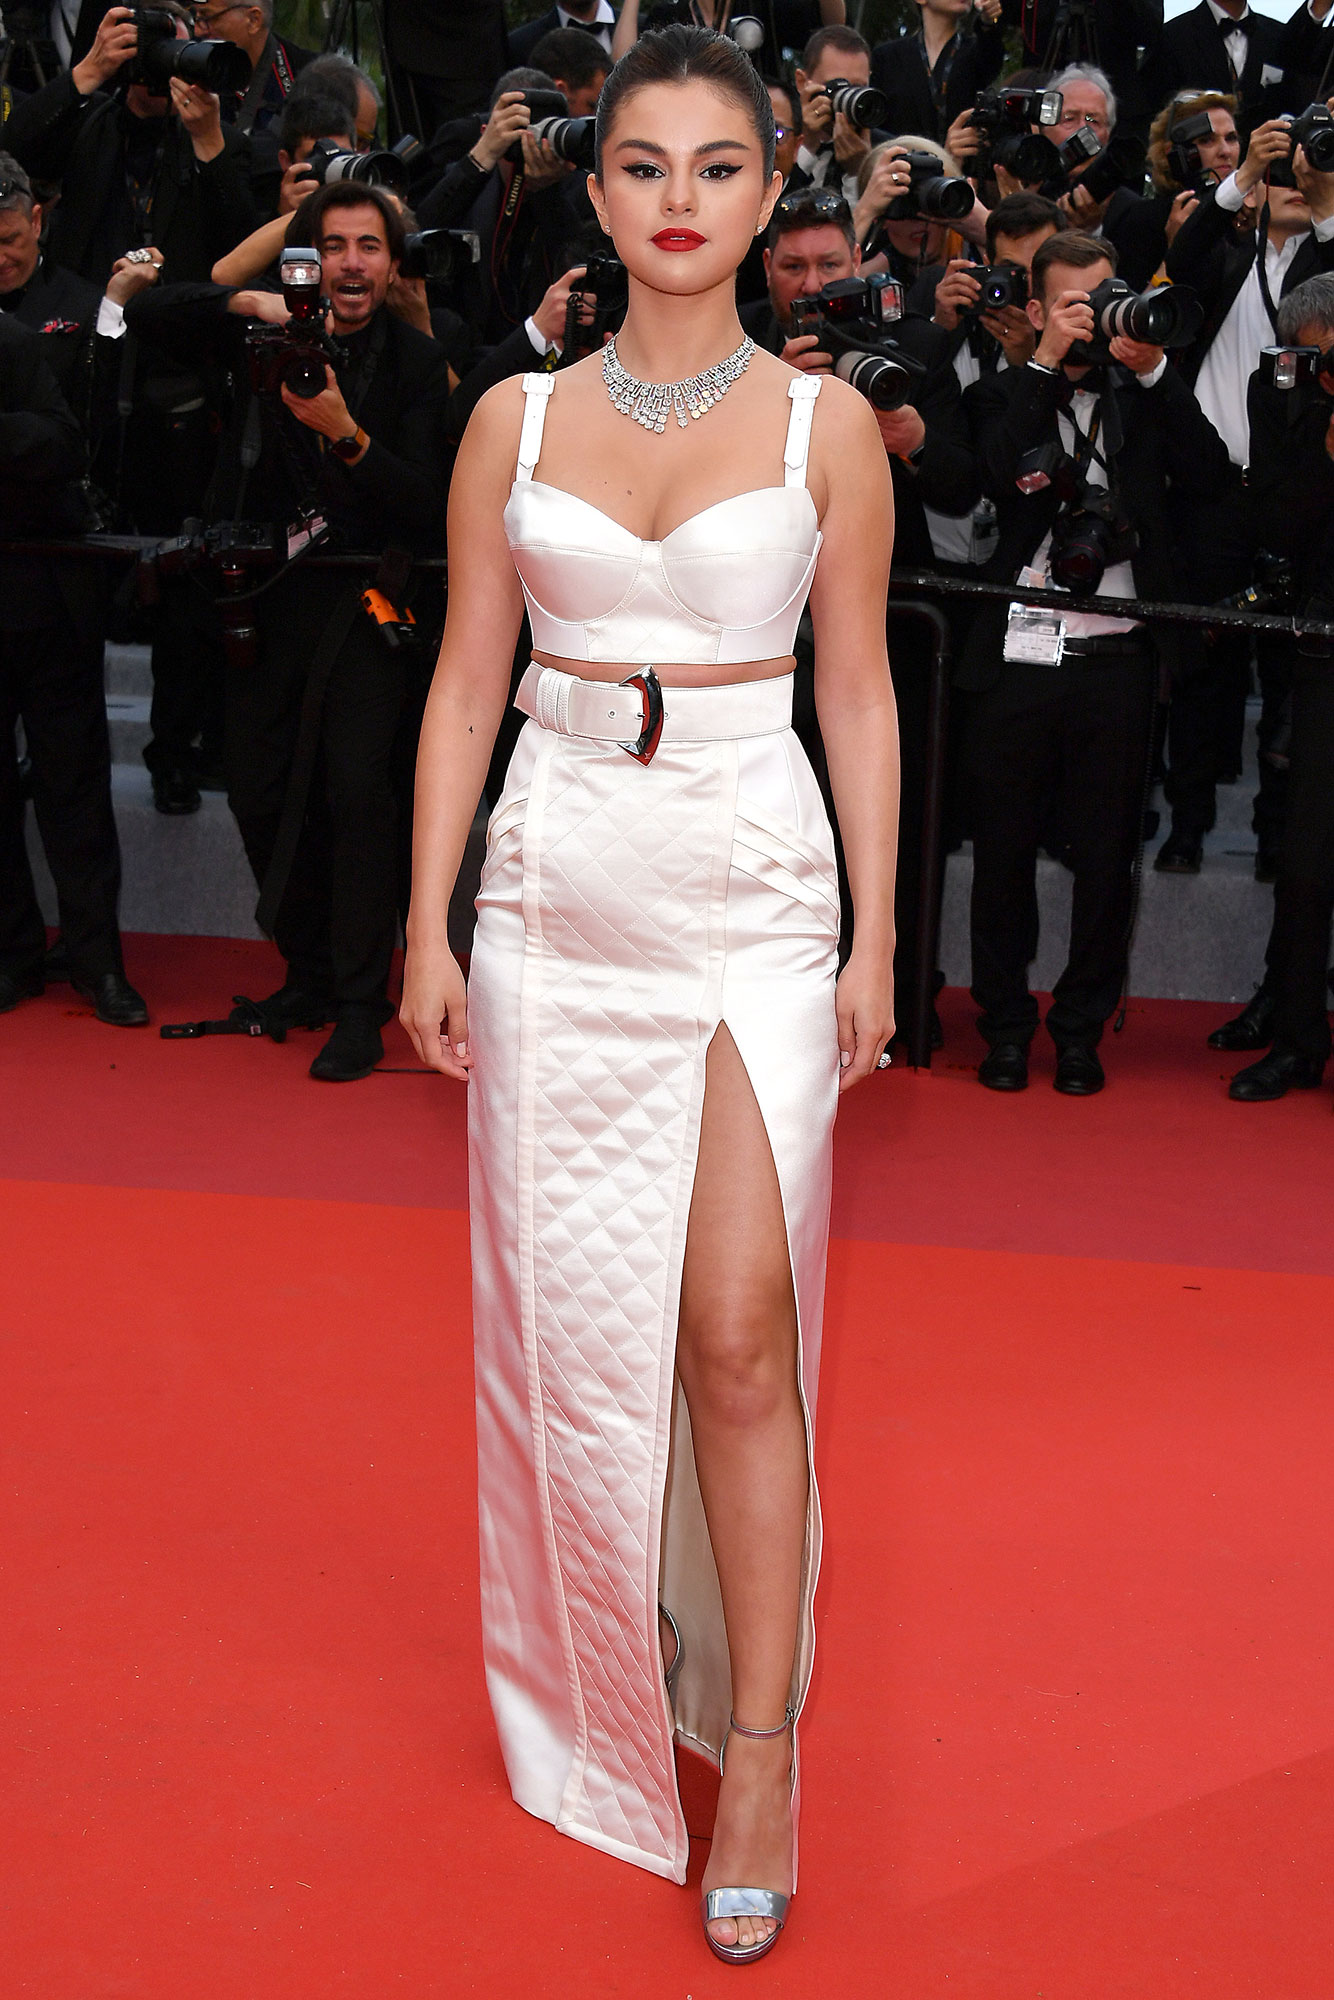 """Selena Gomez Cannes - Selena Gomez attends the opening ceremony and screening of """"The Dead Don't Die"""" during the 72nd annual Cannes Film Festival on May 14, 2019 in Cannes, France."""